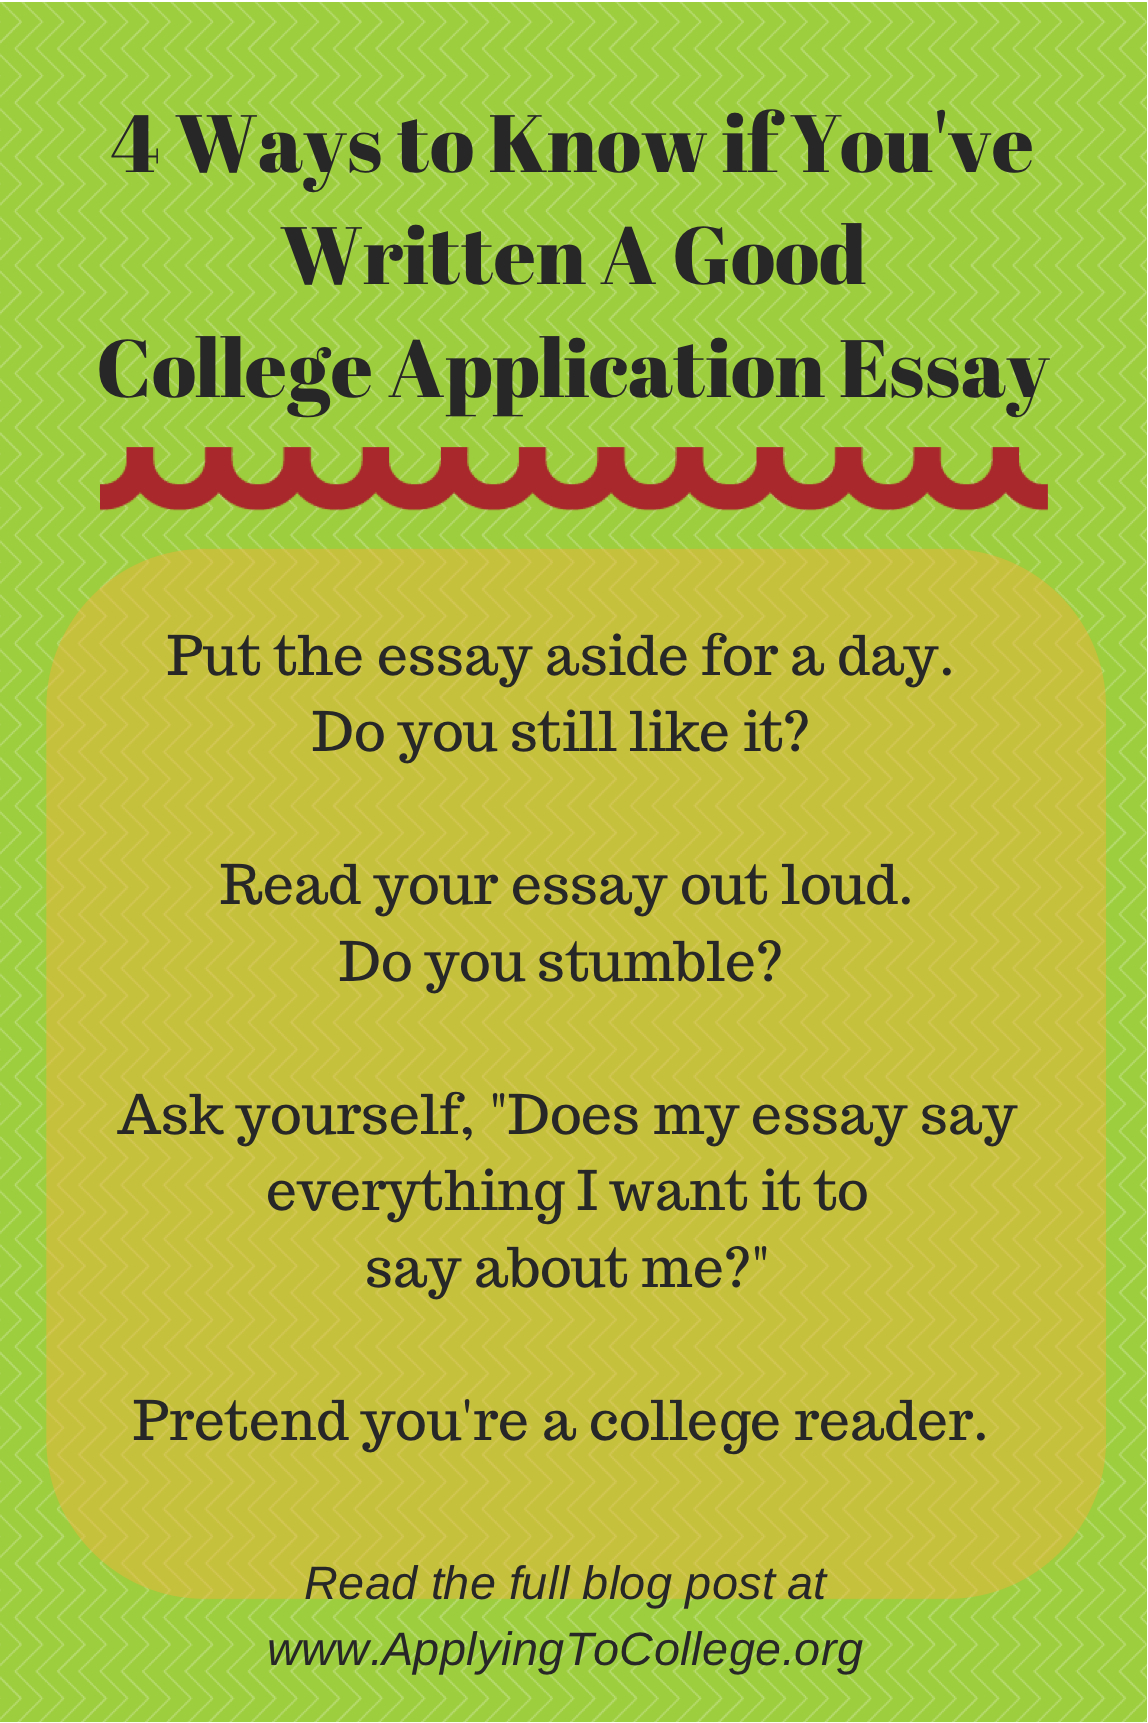 College admission essays online good